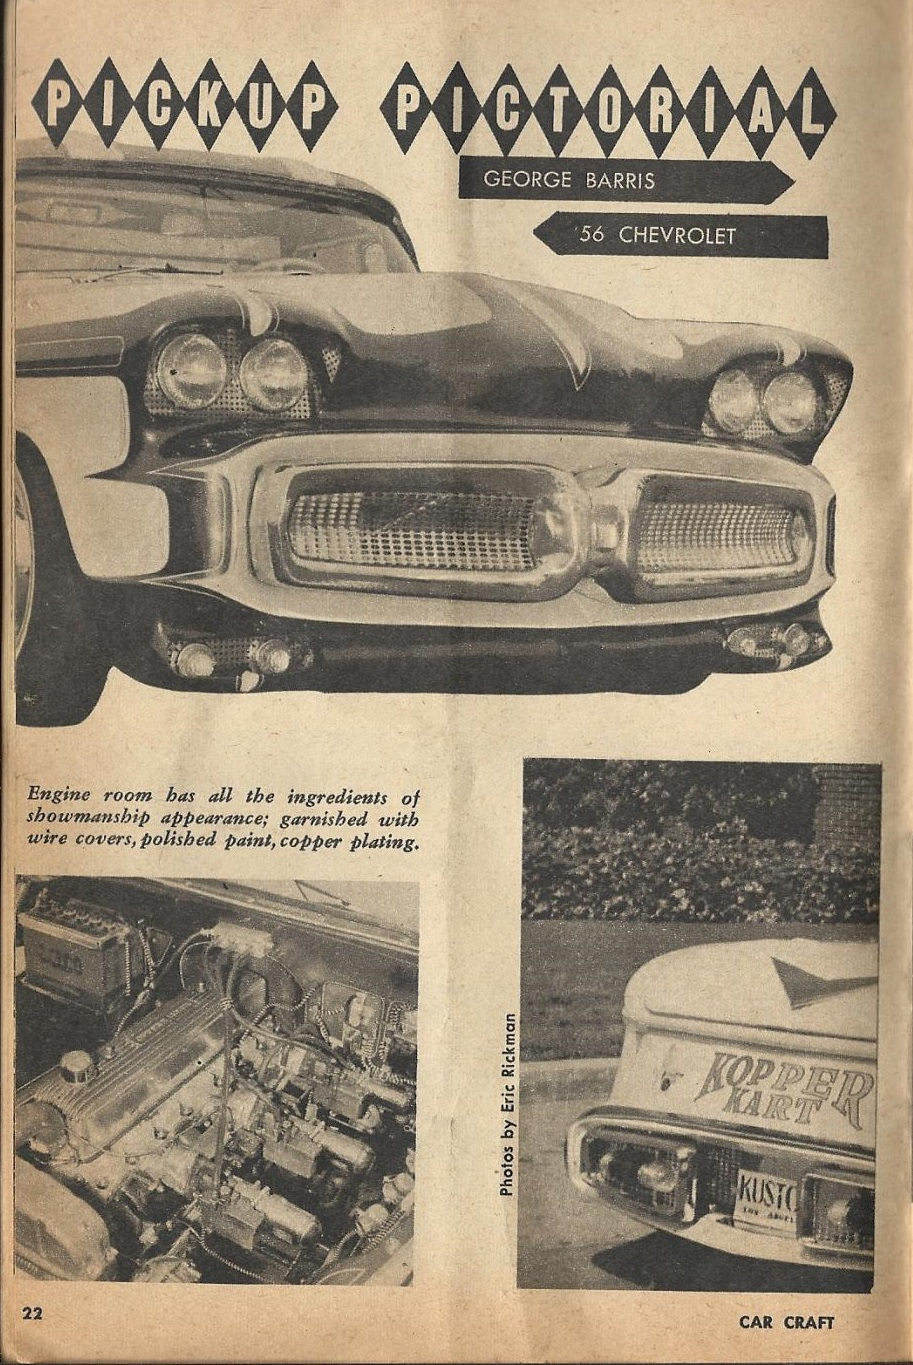 Car Craft - Special Pick Up June 1959 - Pick up Pictorial 2218